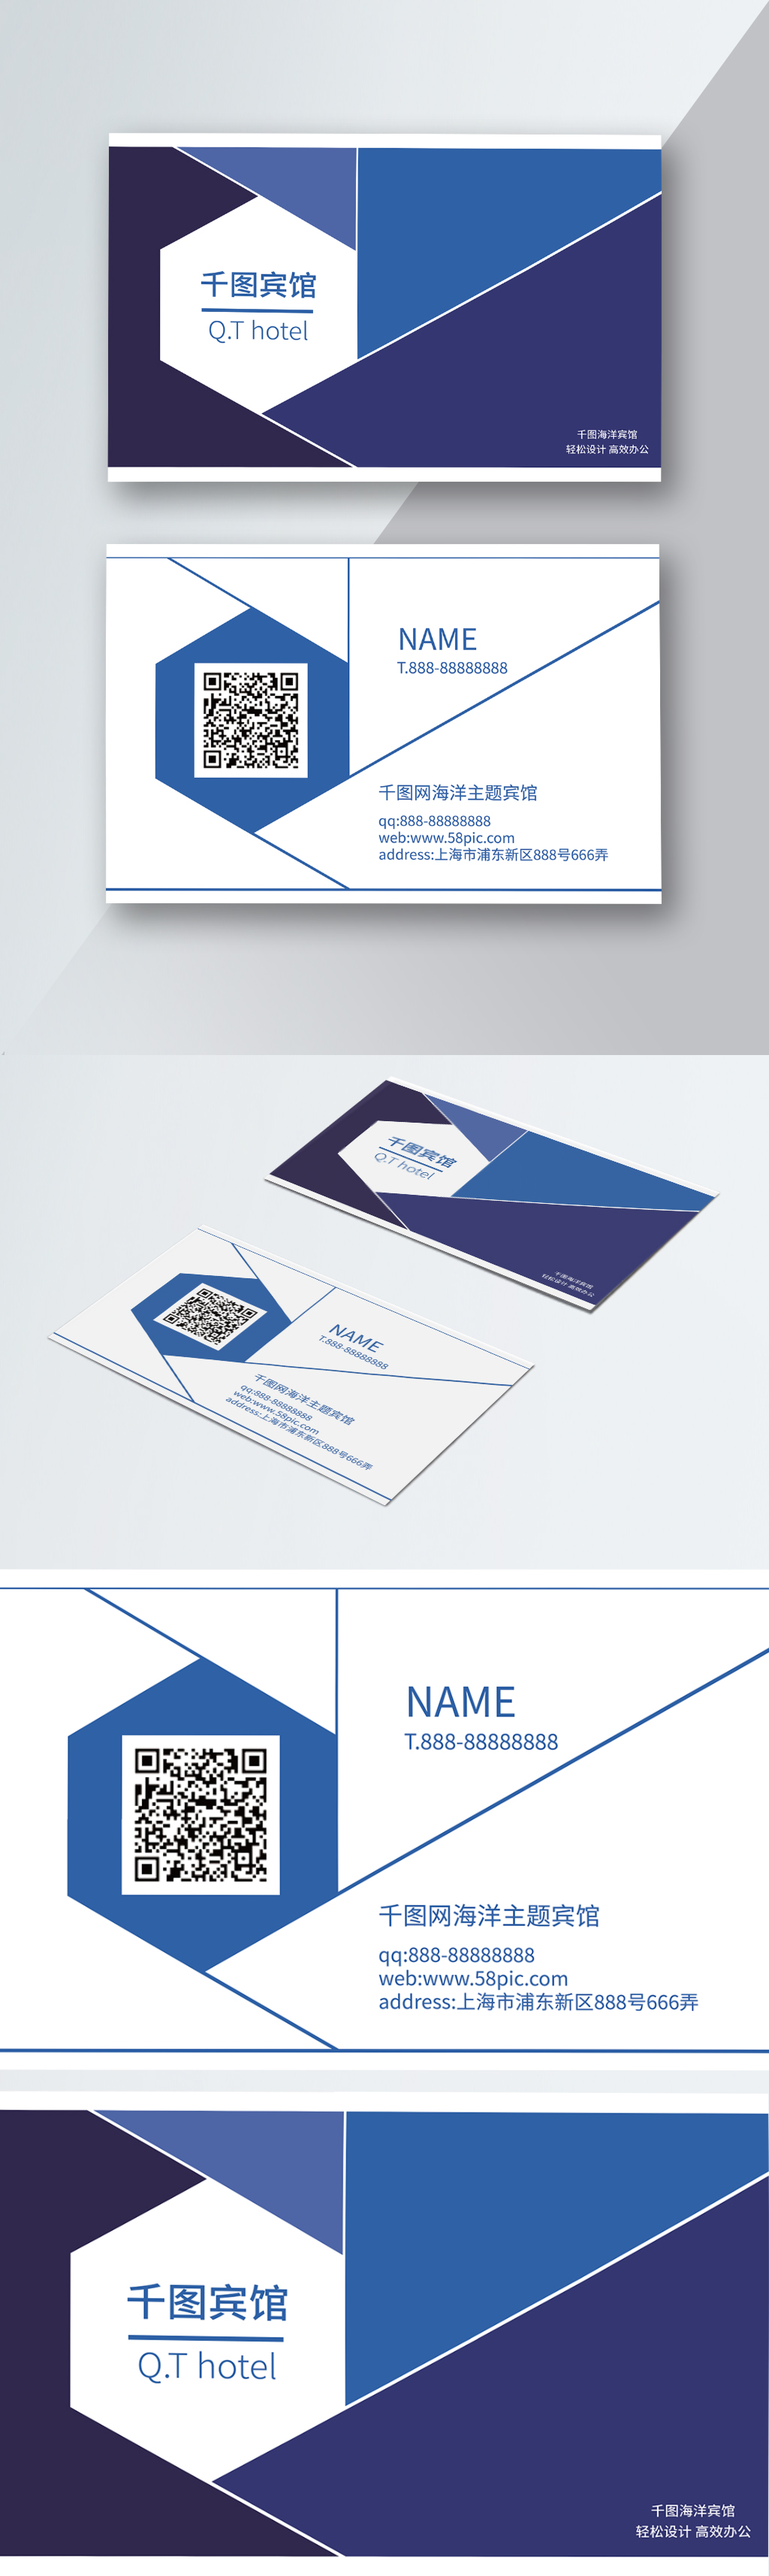 Simple Blue Color Block White Ocean Theme Hotel Business Card Template Image Picture Free Download 733415050 Lovepik Com